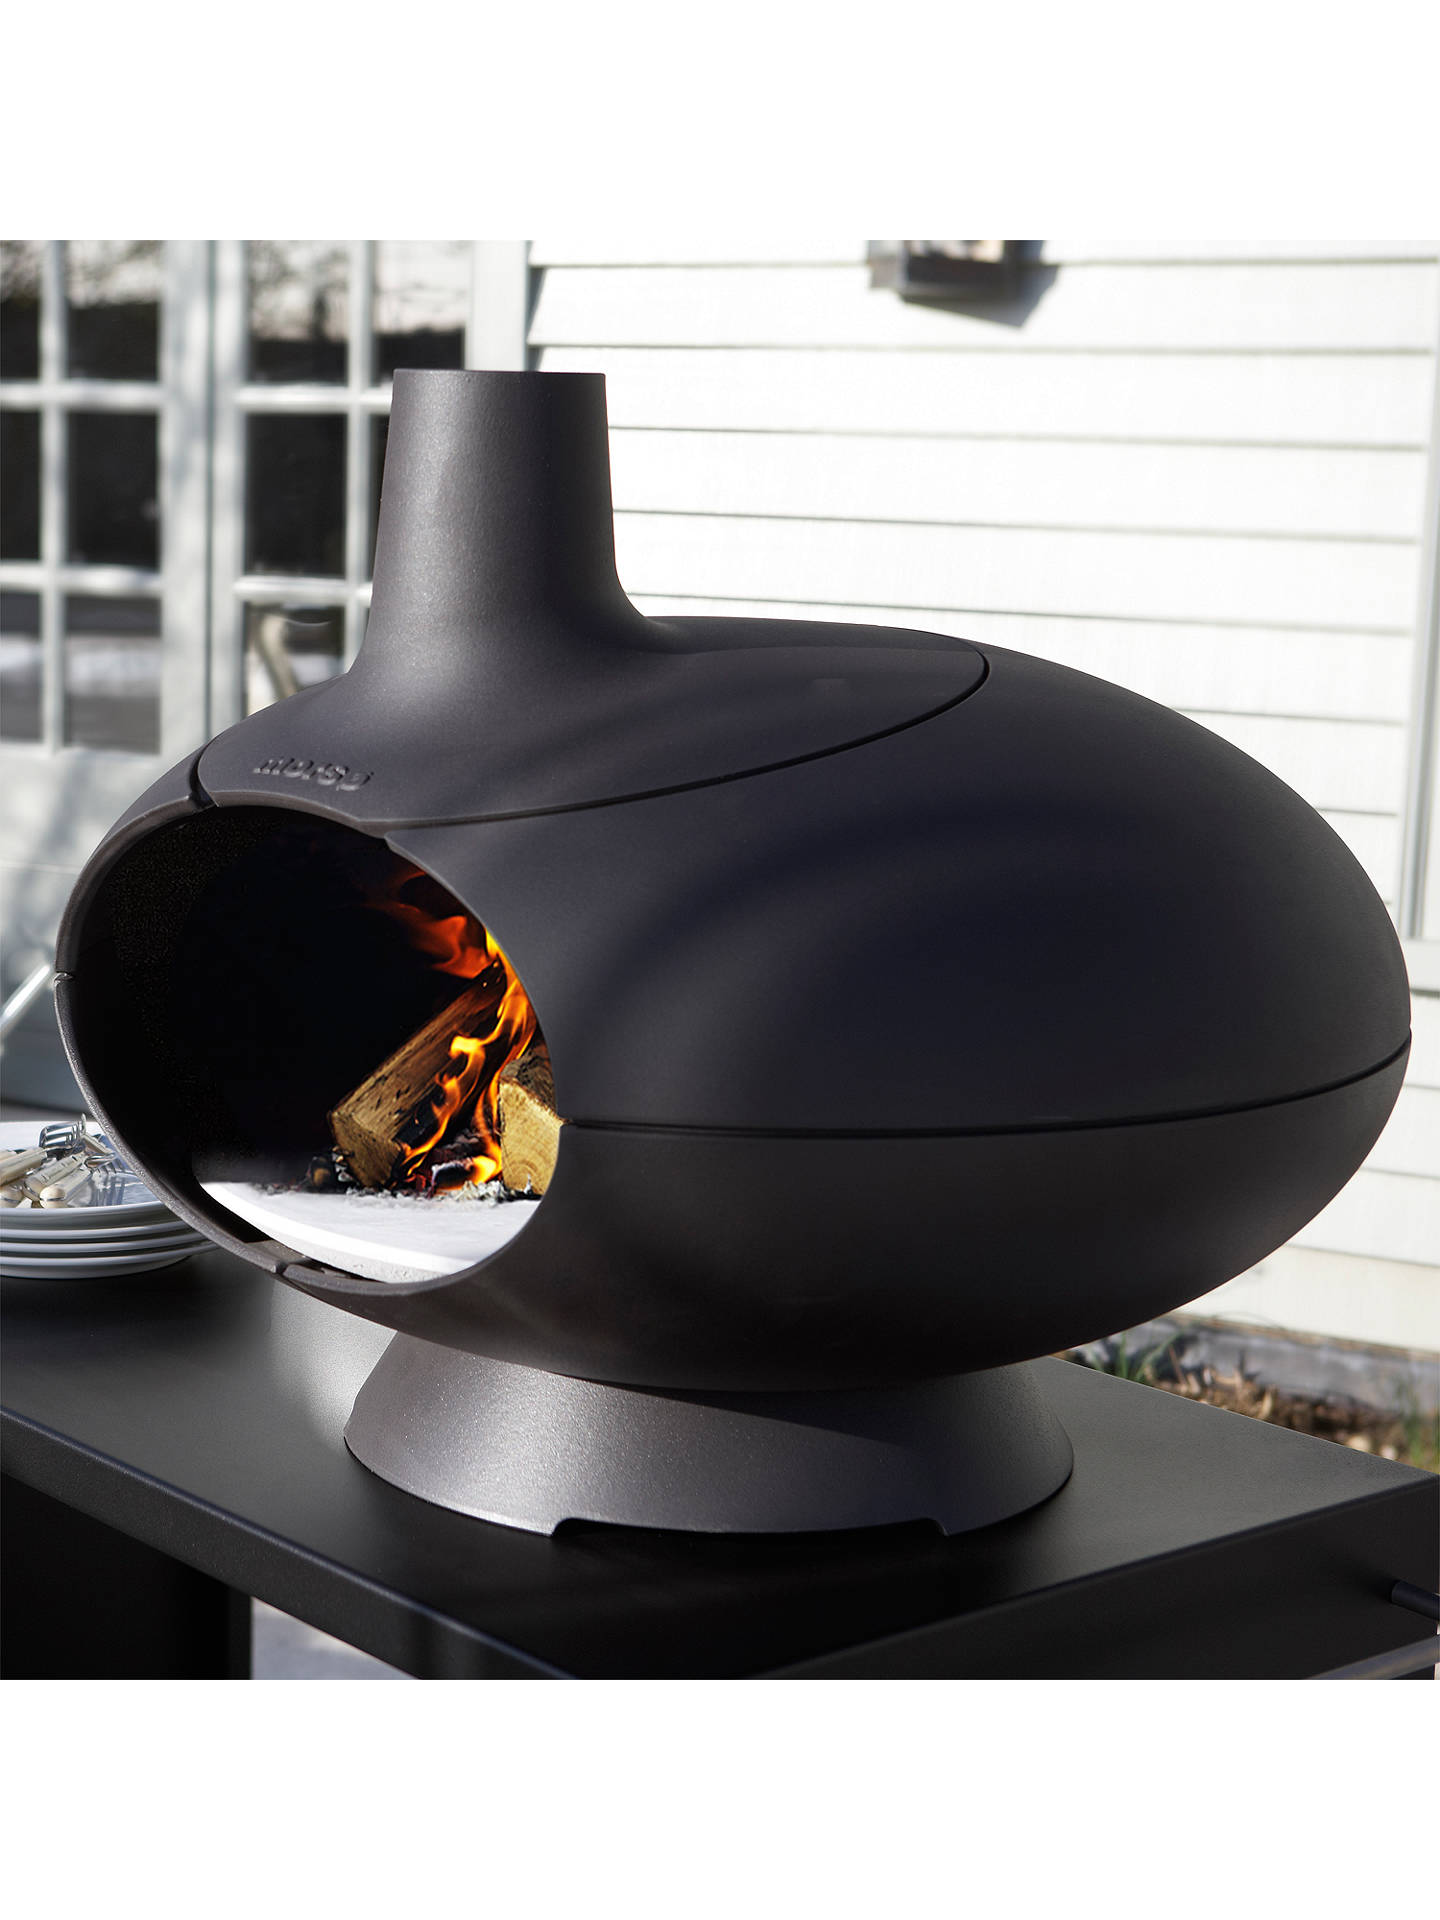 Buy Morsø Forno Outdoor Oven Online at johnlewis.com